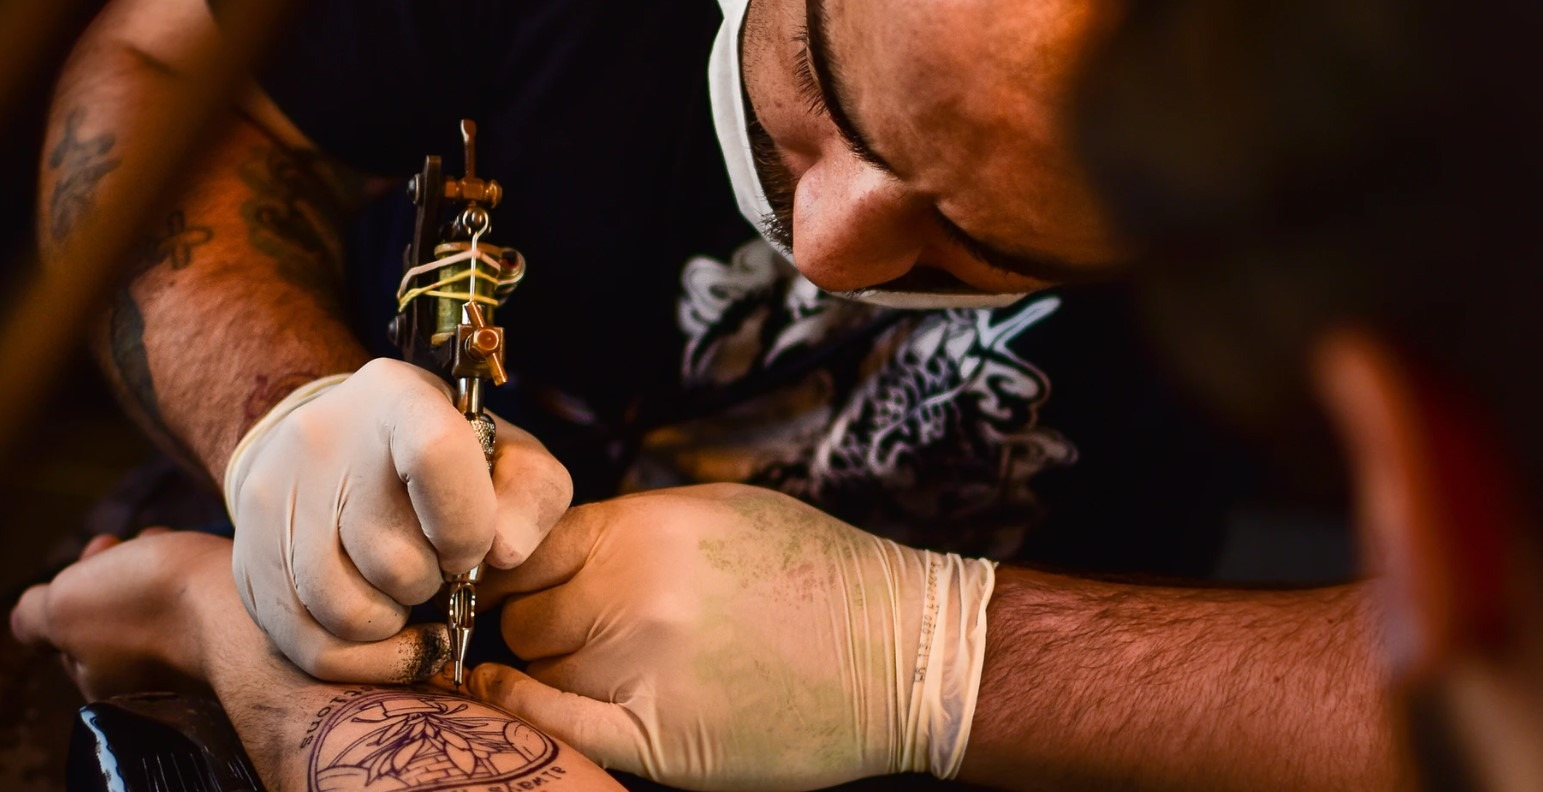 The Best Rotary Tattoo Machines